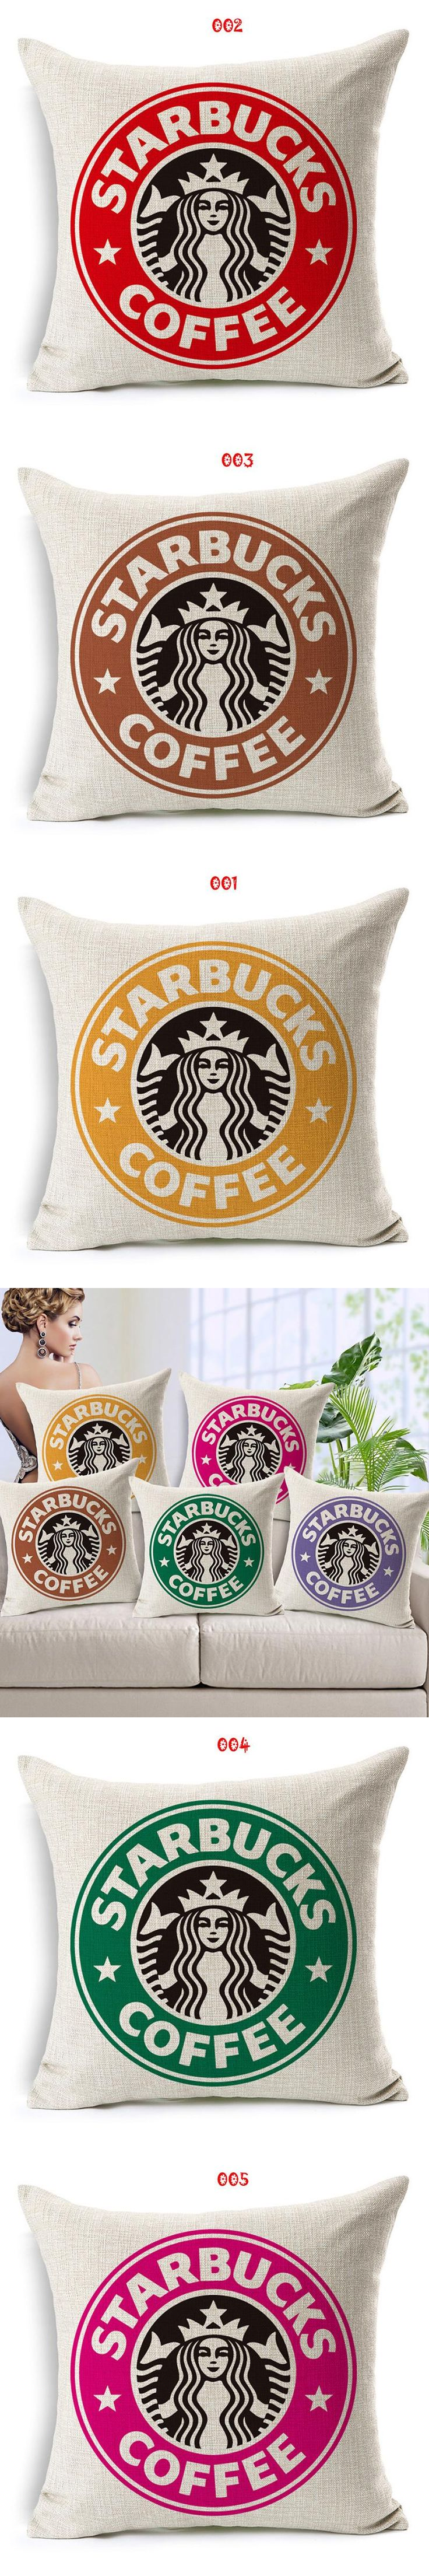 Wholesale and retail 18in*18in Cushion cover Coffee symbol design  linen/cotton decorative pillow cover seat pillow case